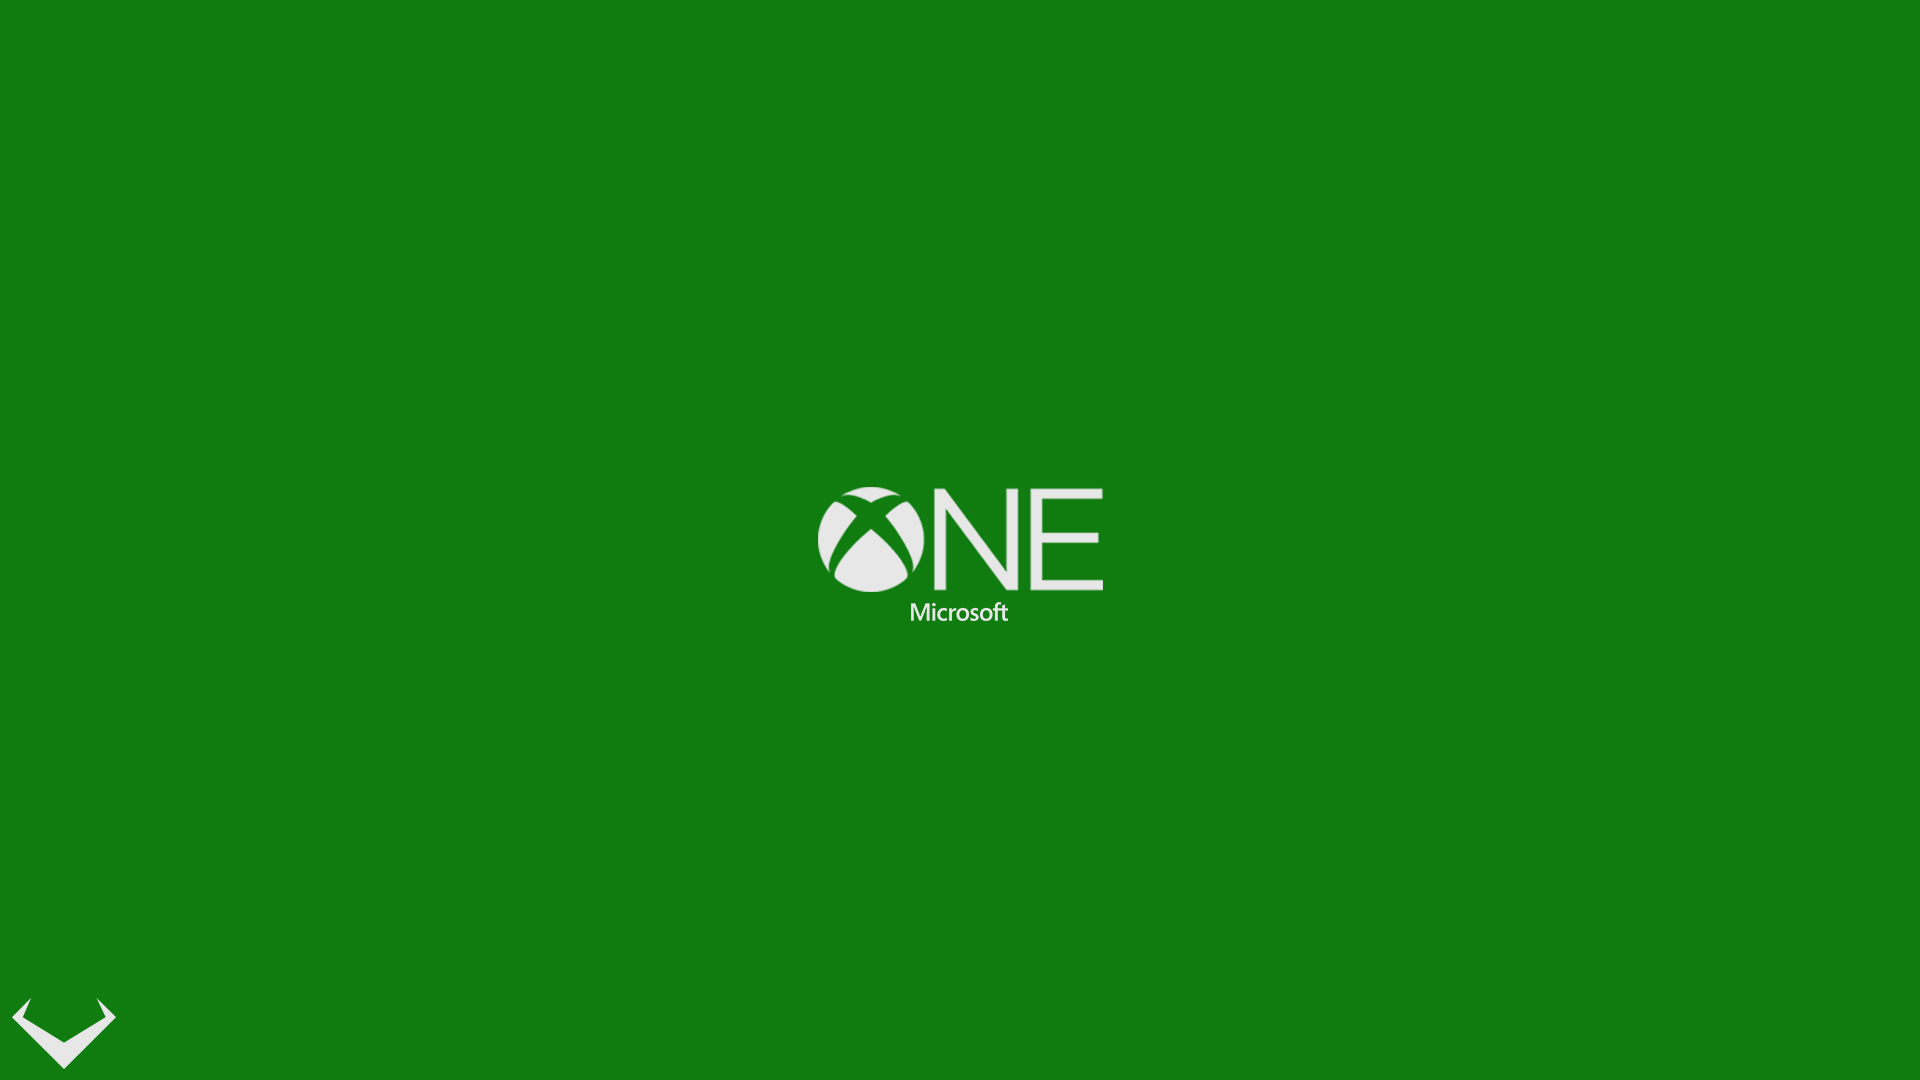 Live Wallpaper Iphone X Commercial Not On Phone Free Download Xbox Wallpapers Pixelstalk Net